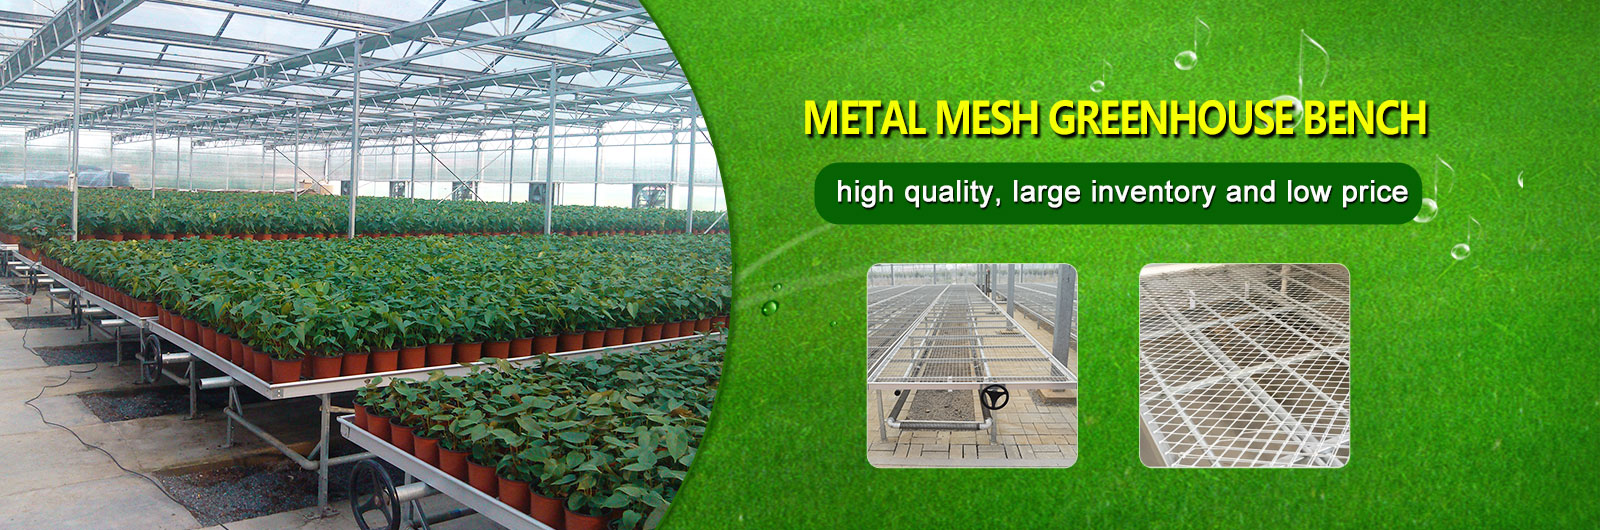 Welded mesh rolling bench greenhouse benches